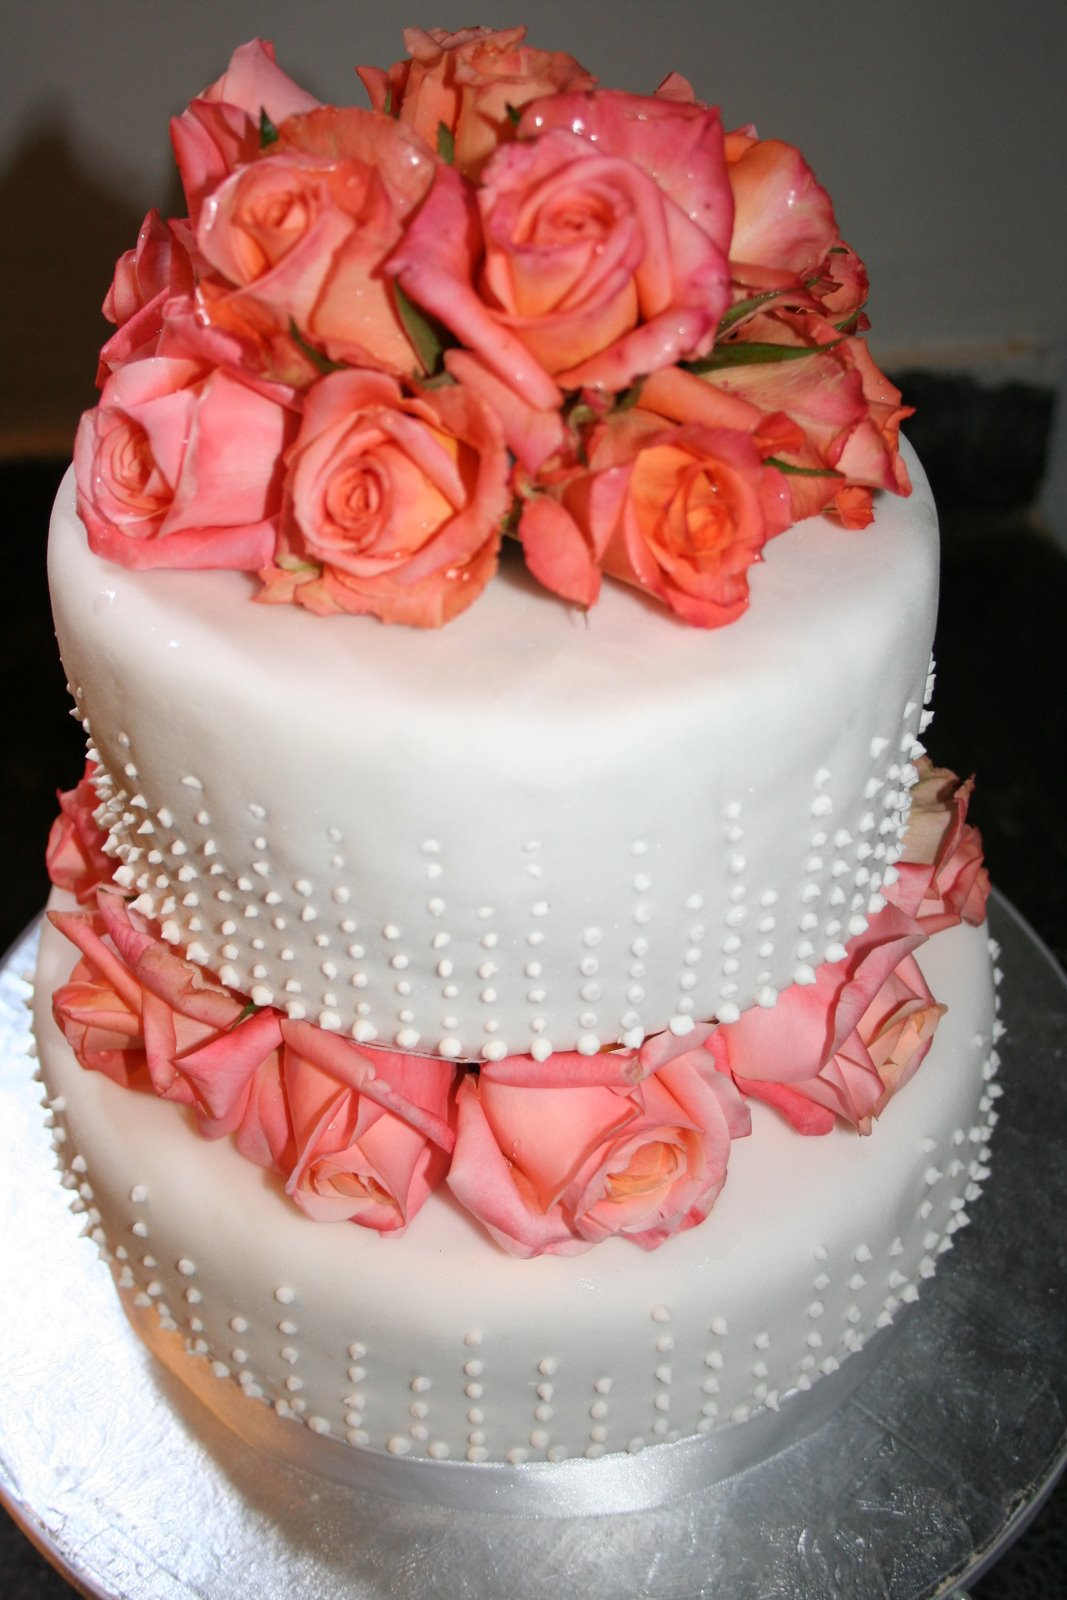 wedding cakes prices, groom attire for beach wedding